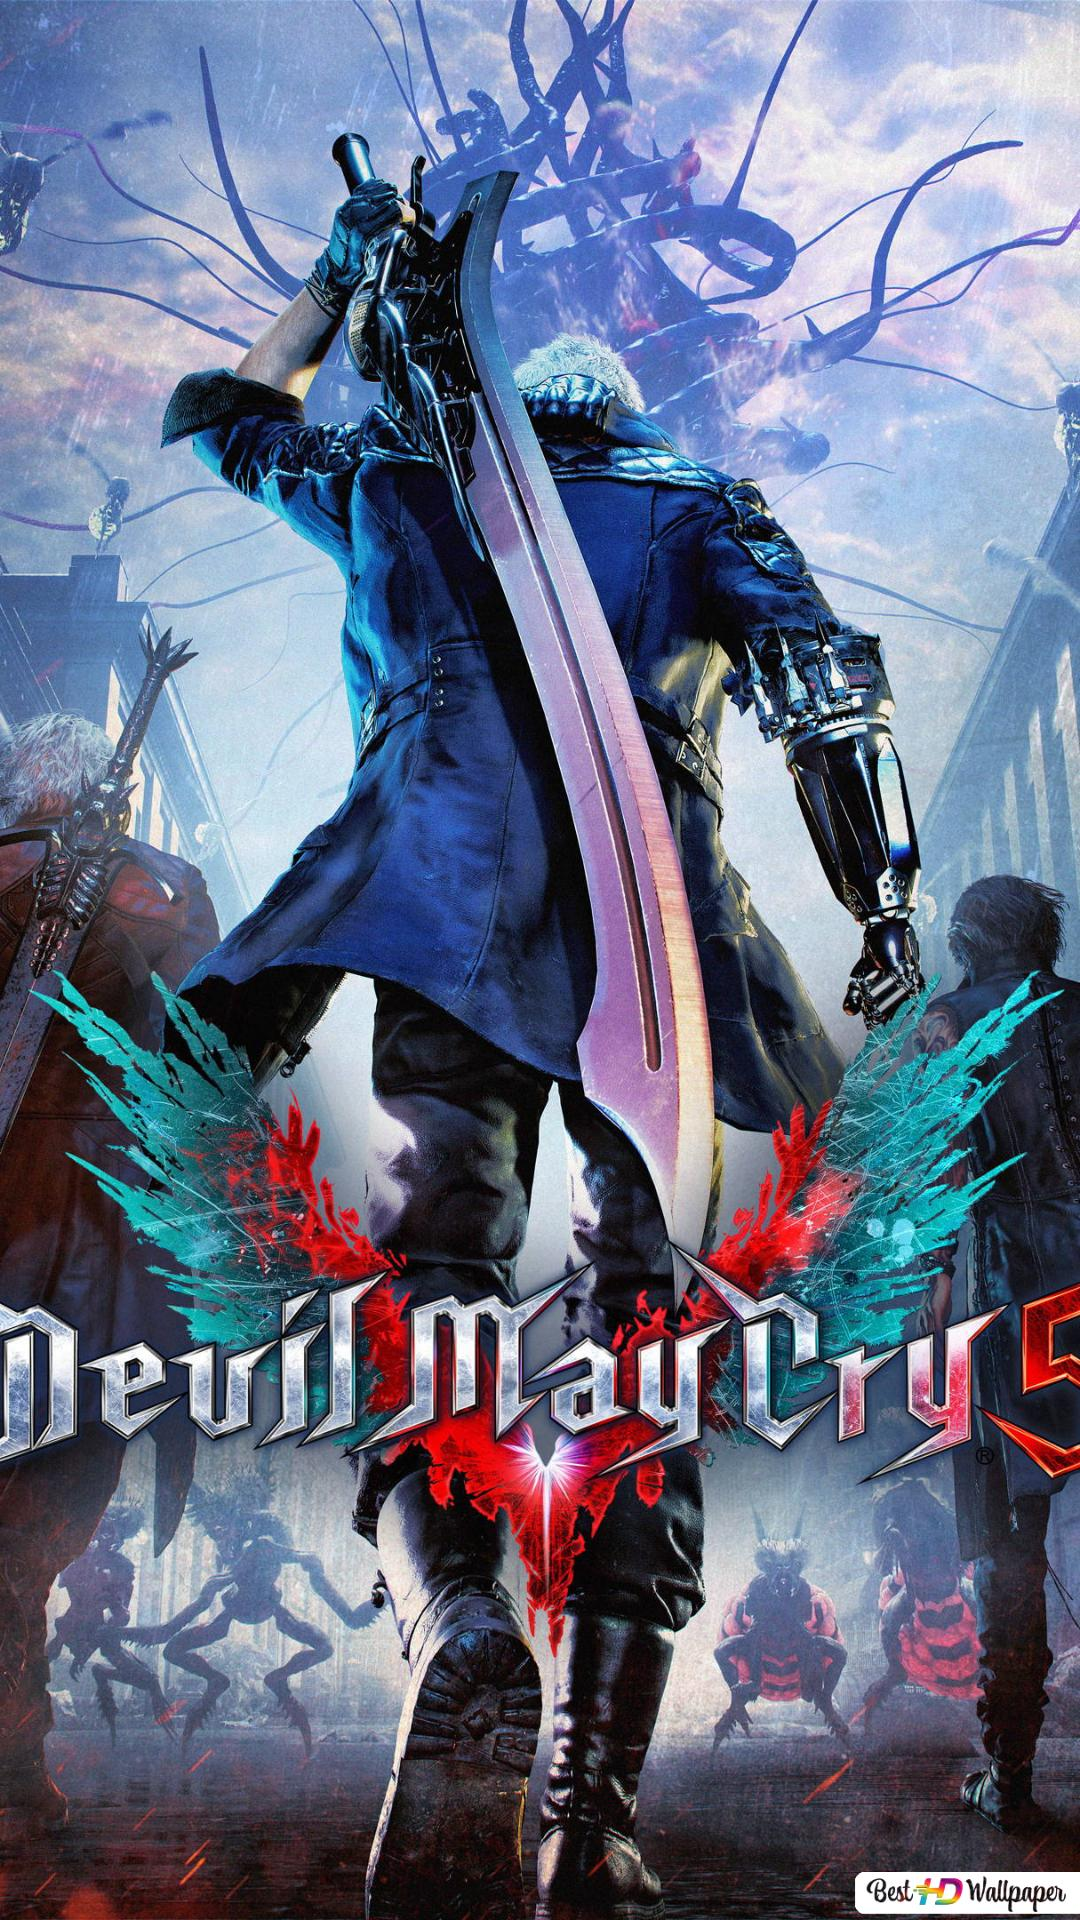 Devil May Cry 5 Action Video Game Hd Wallpaper Download